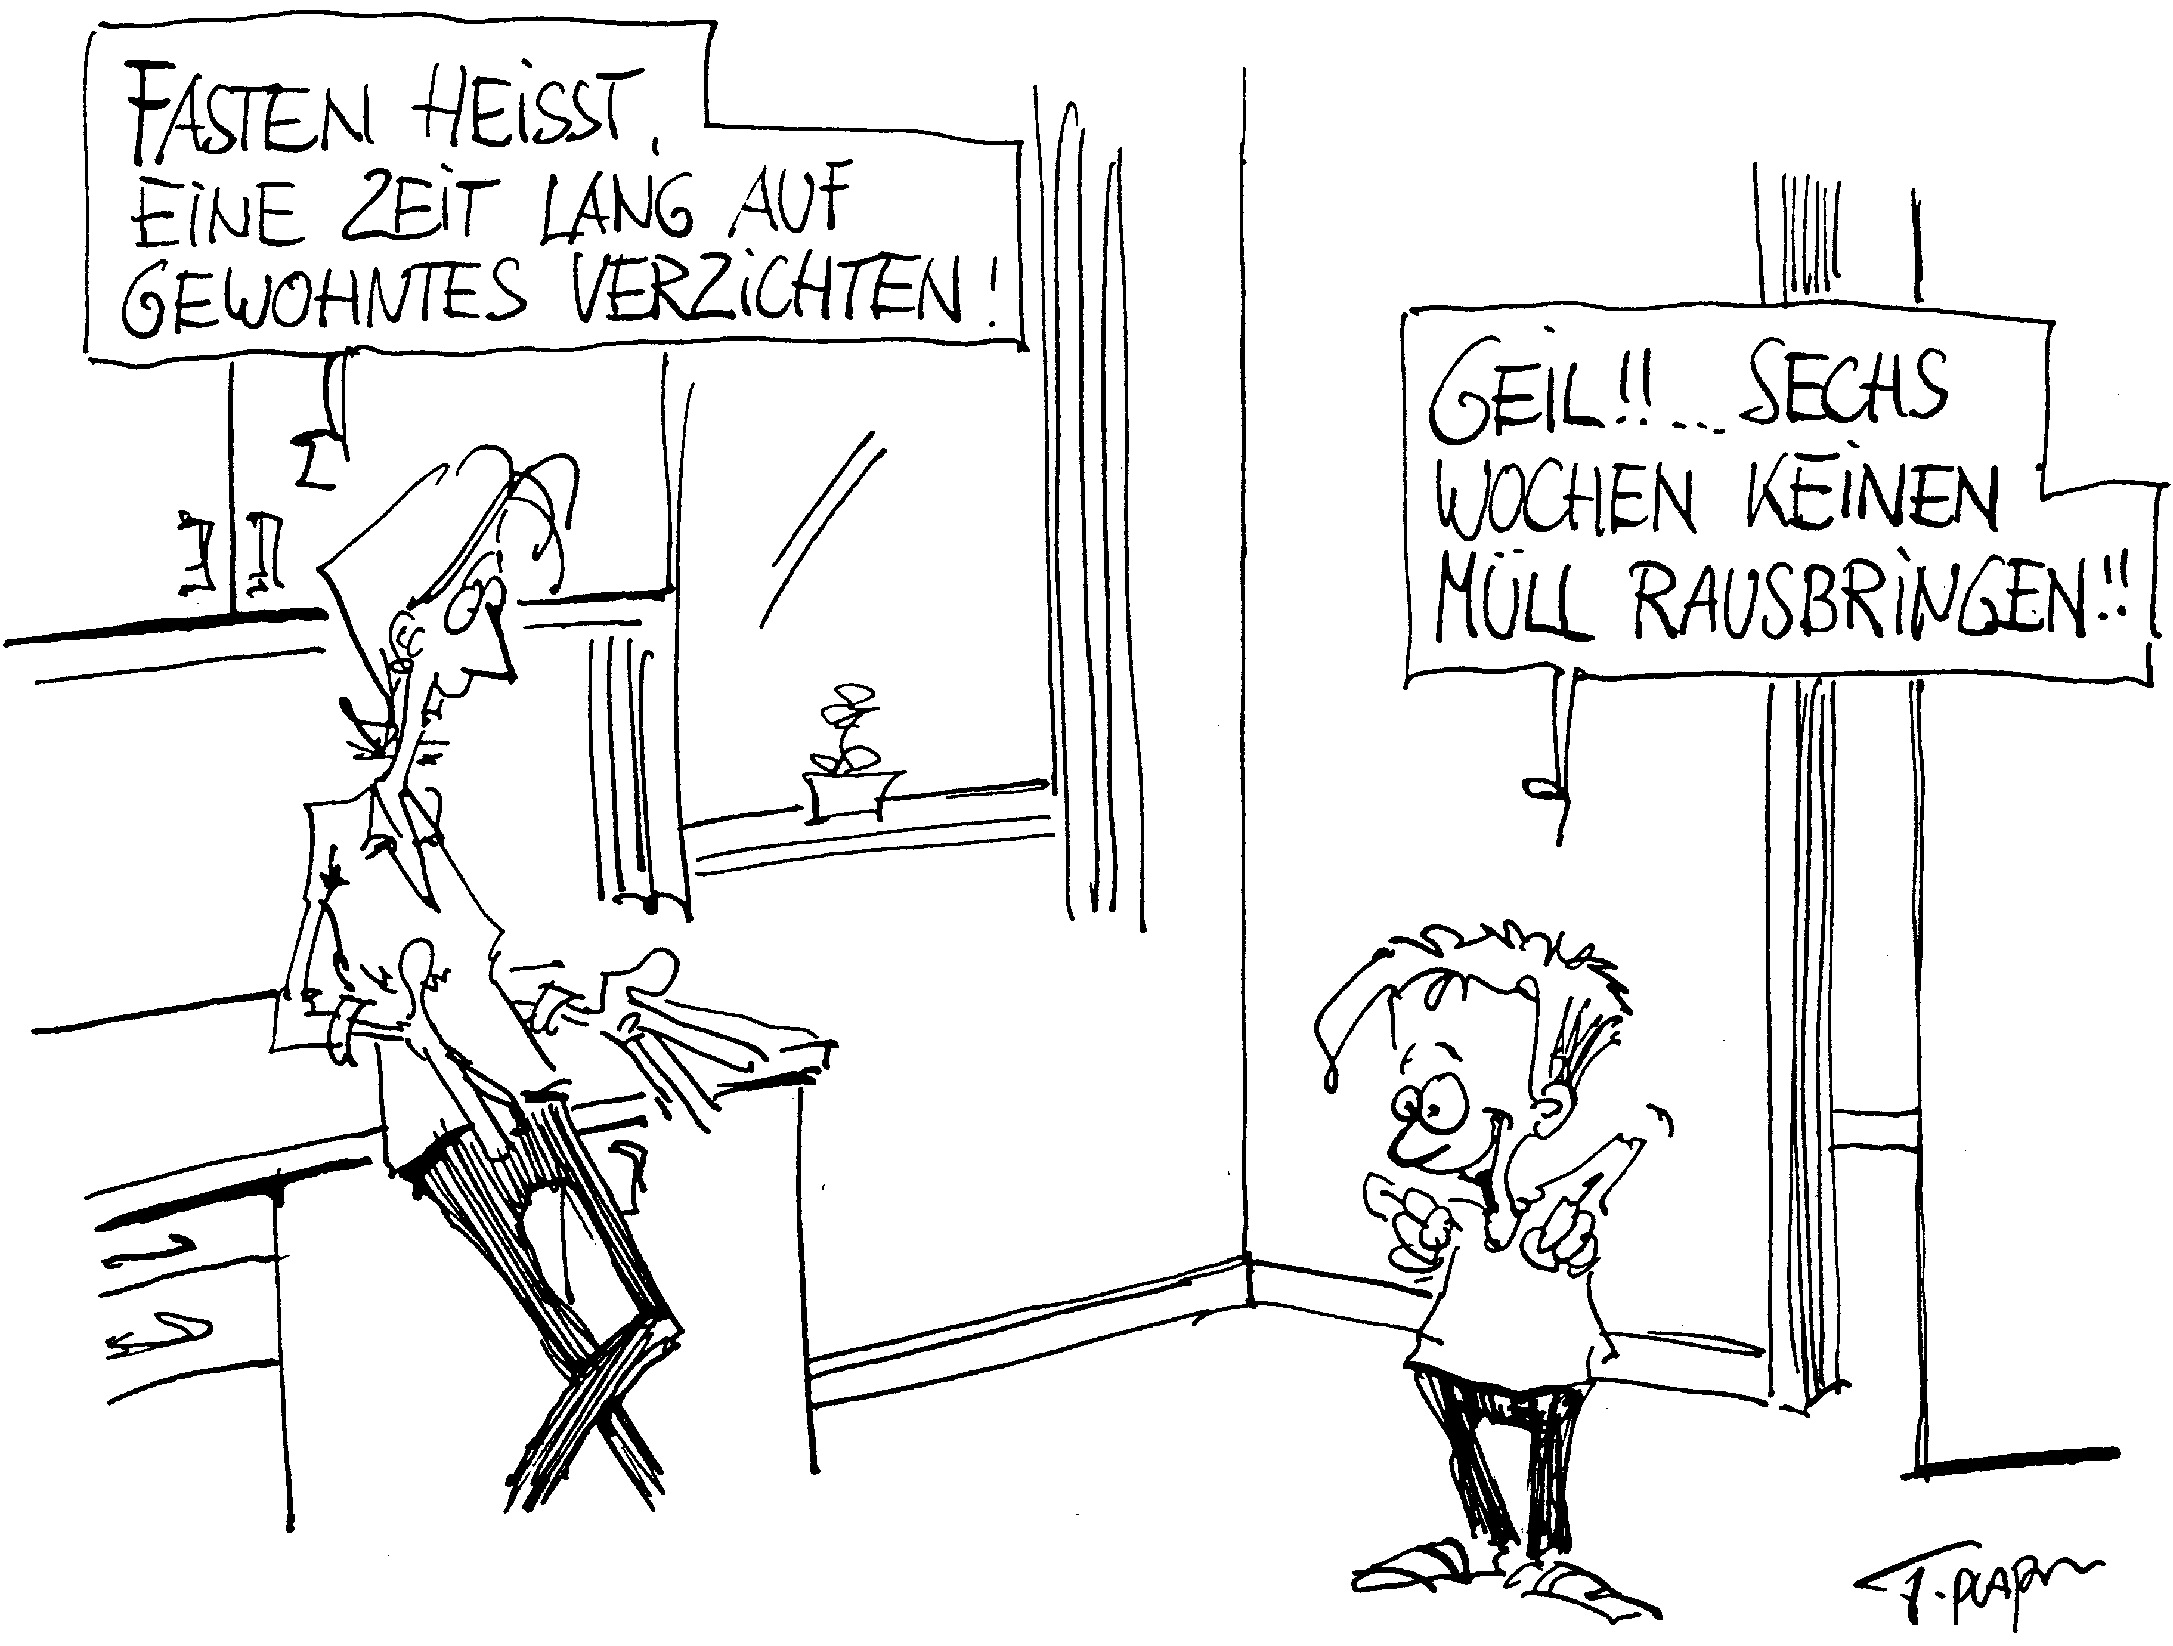 Fasten Cartoon 092_4204_SW